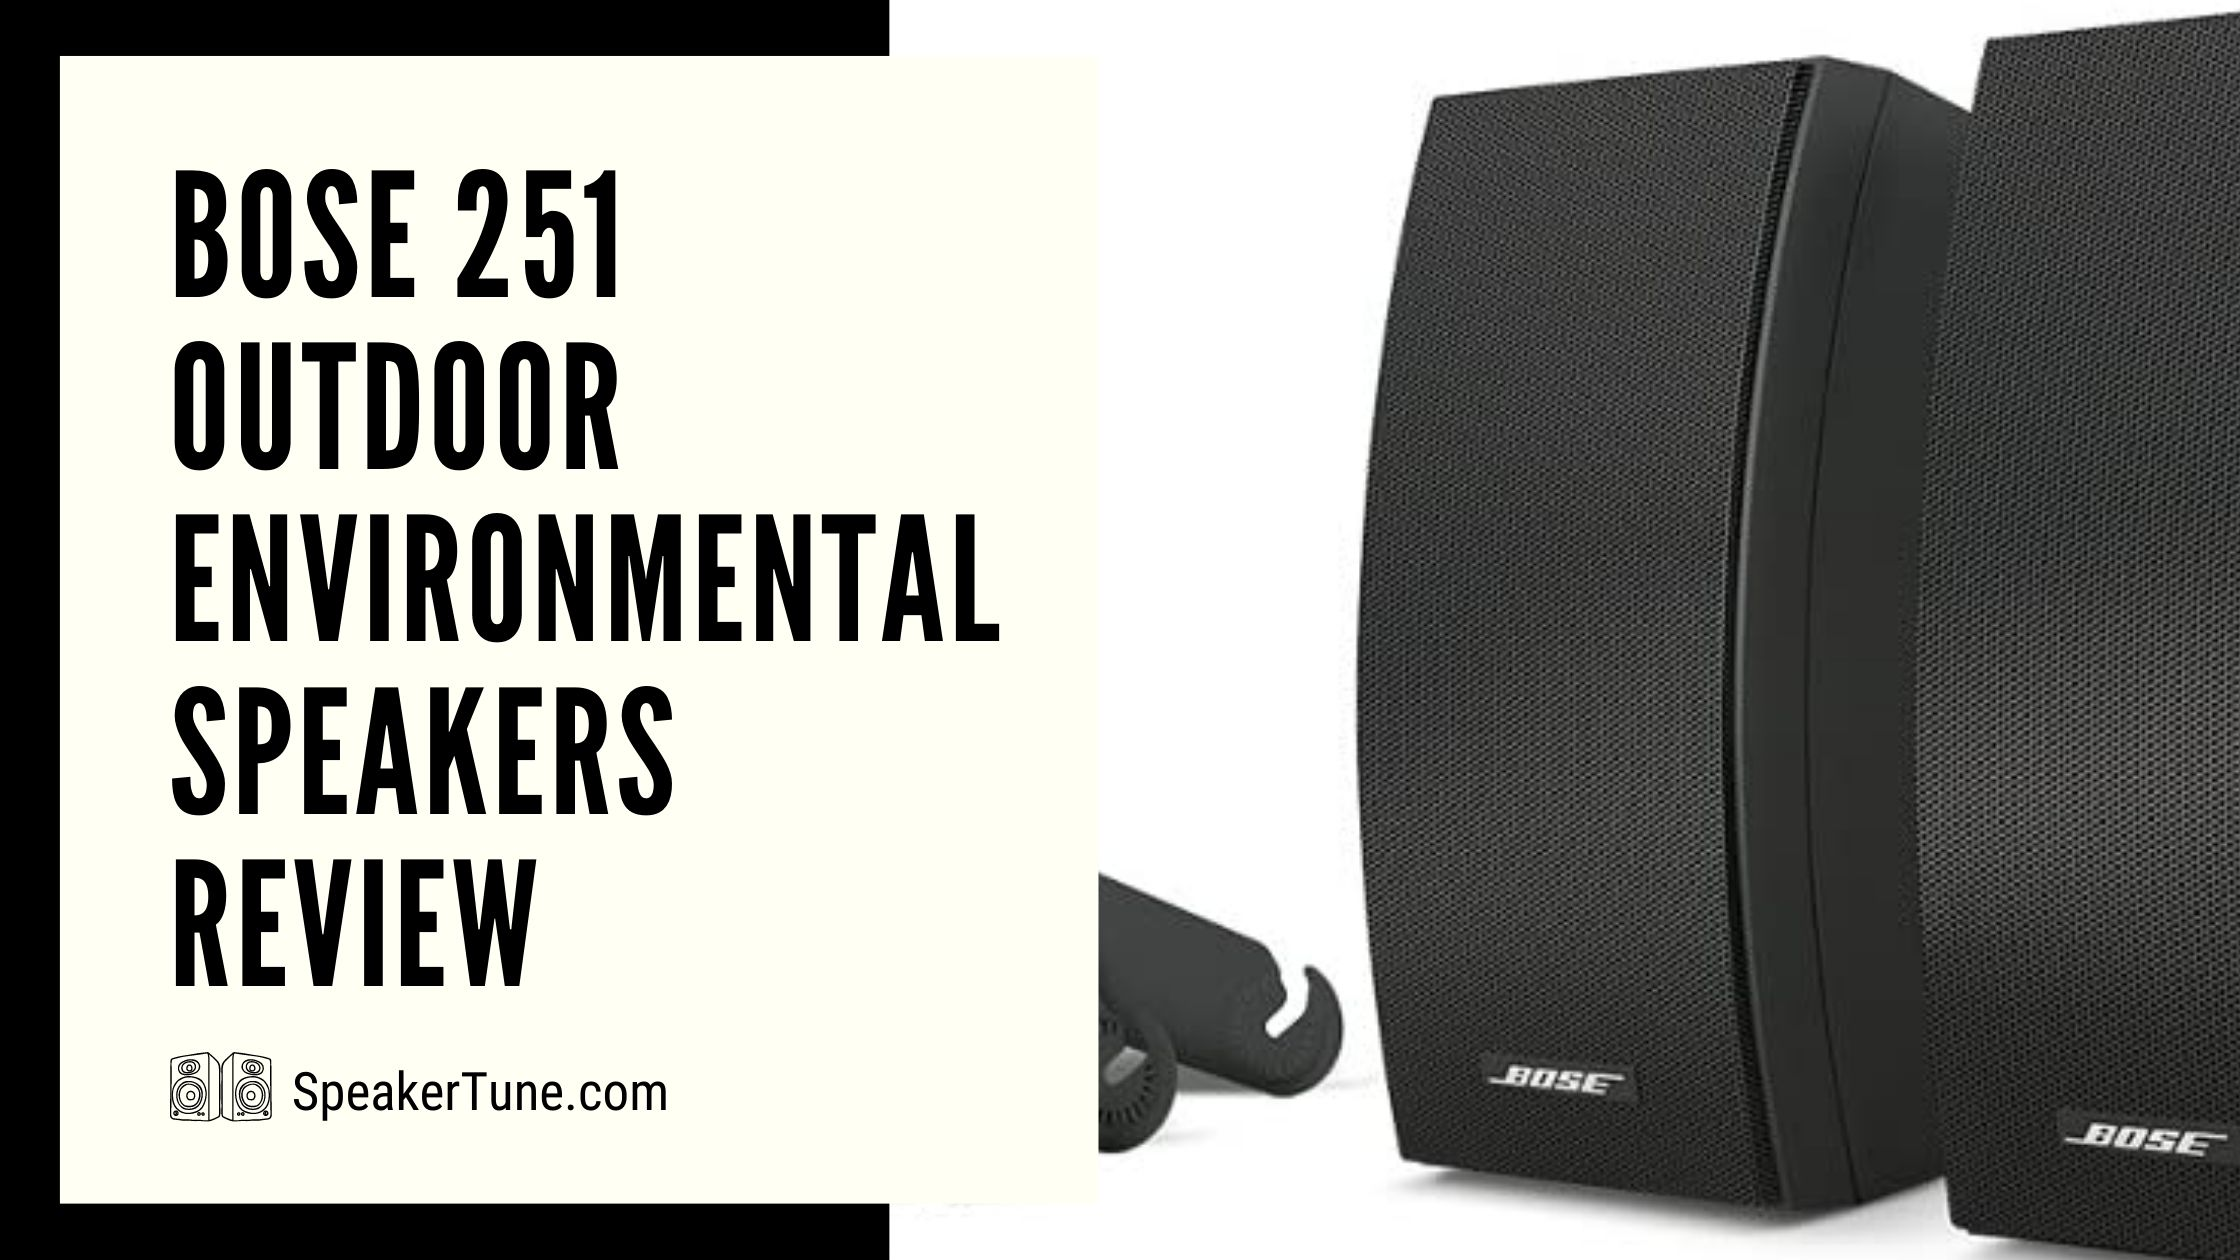 ST-Bose-251-Outdoor-Environmental-Speakers-Review